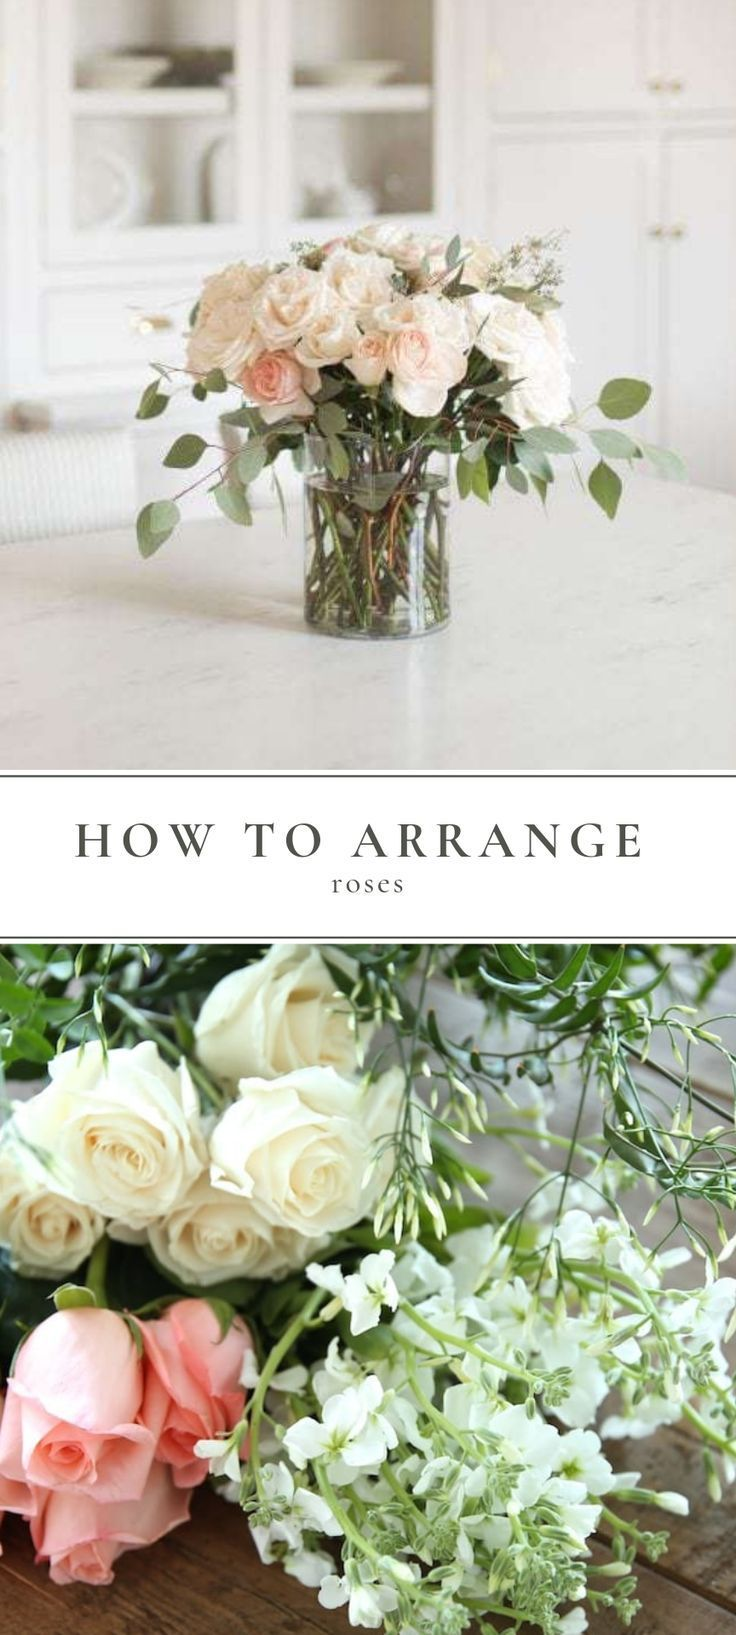 An easy tutorial to learn how to arrange roses and